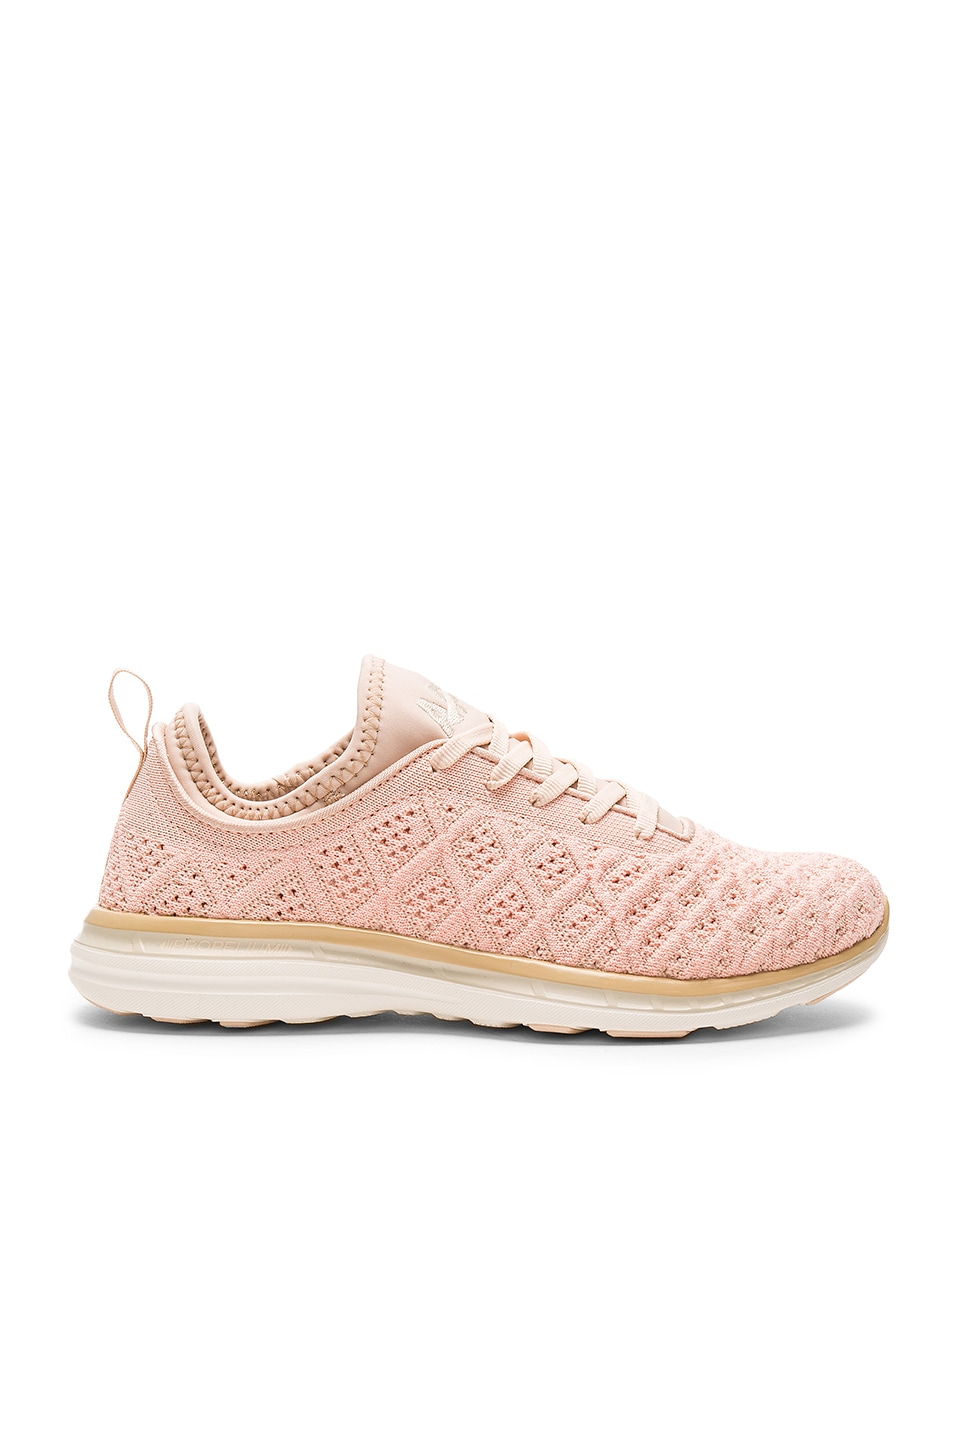 APL: Athletic Propulsion Labs TechLoom Phantom Sneaker in Blush & Cream